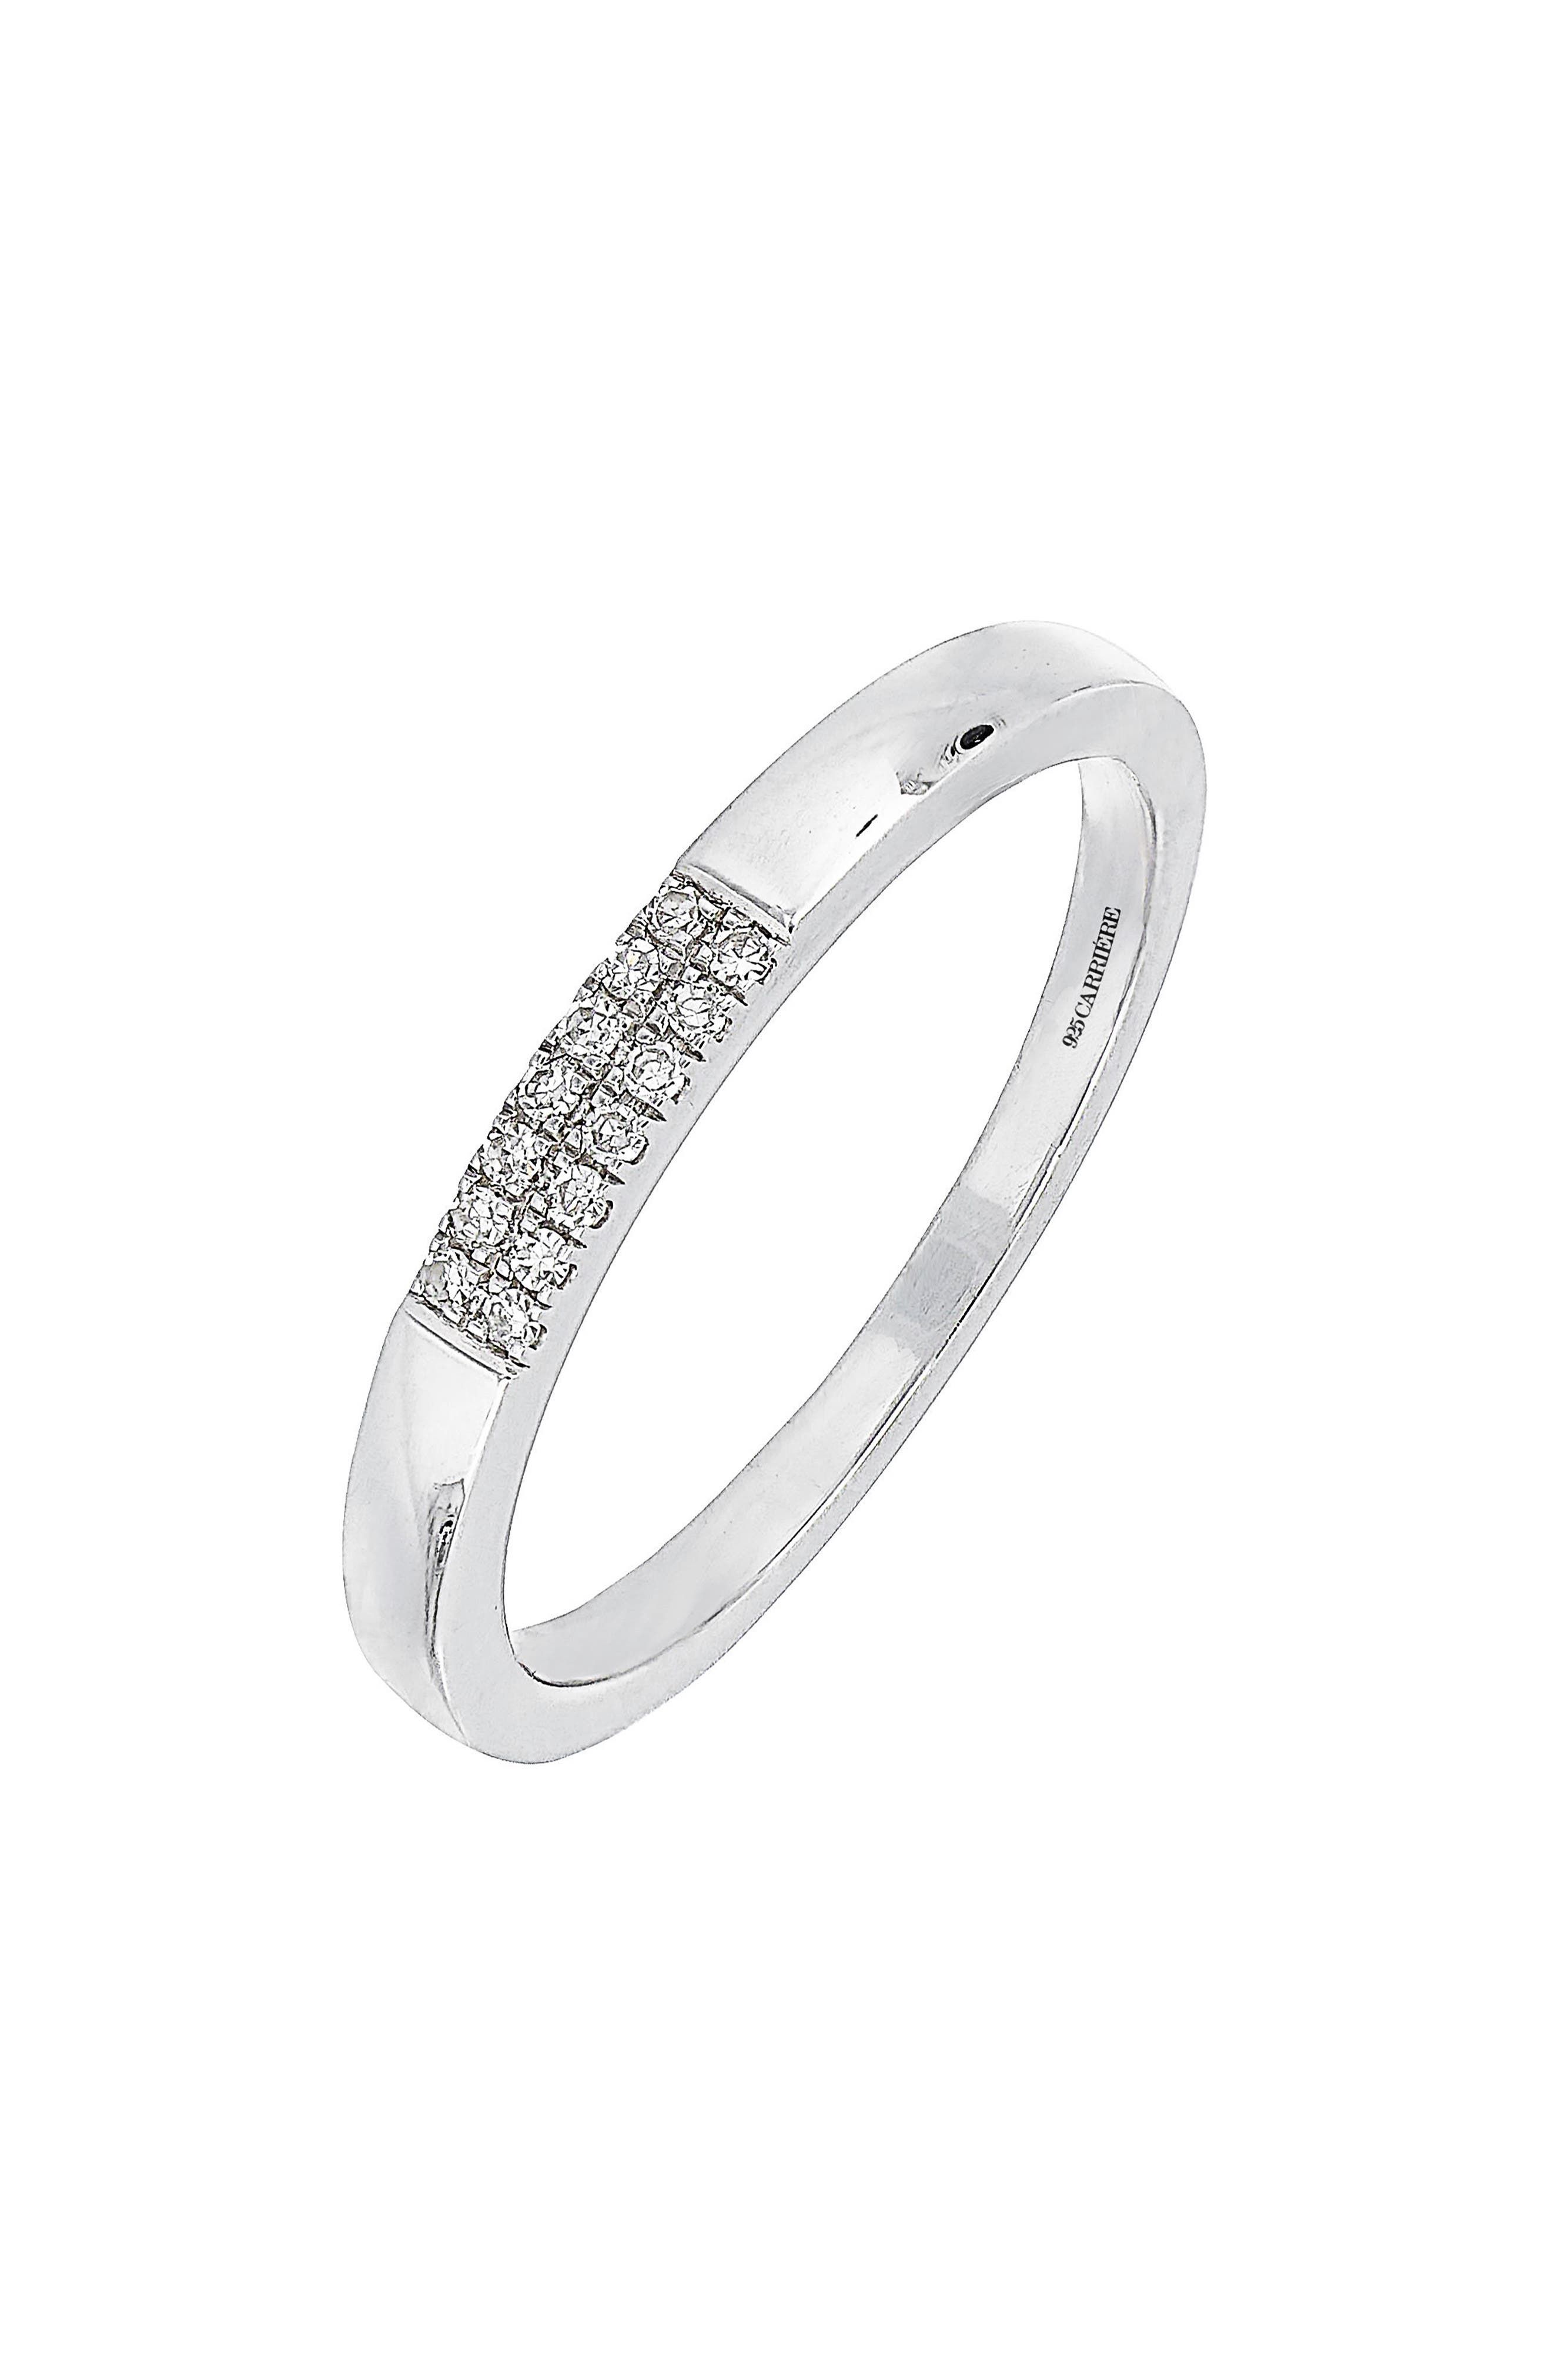 Carrière Diamond Stacking Ring,                             Main thumbnail 1, color,